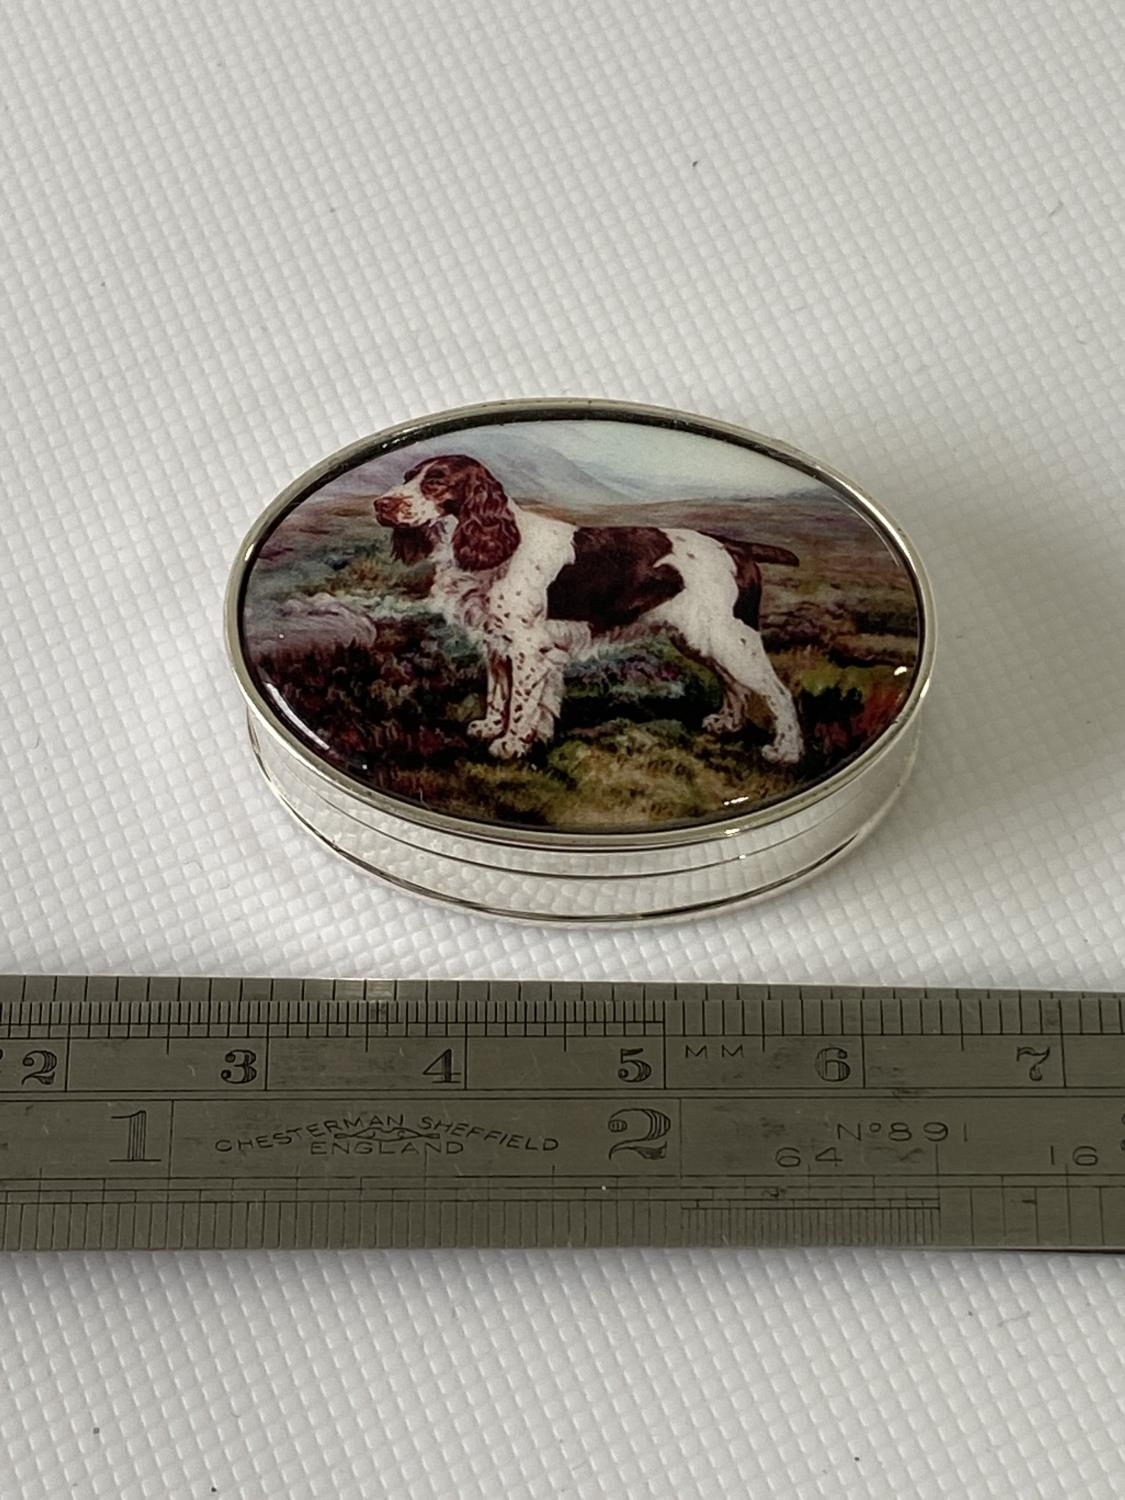 A Silver pill box with enamel lid of a spaniel. [1.4x3.6x2.8cm] - Image 2 of 6